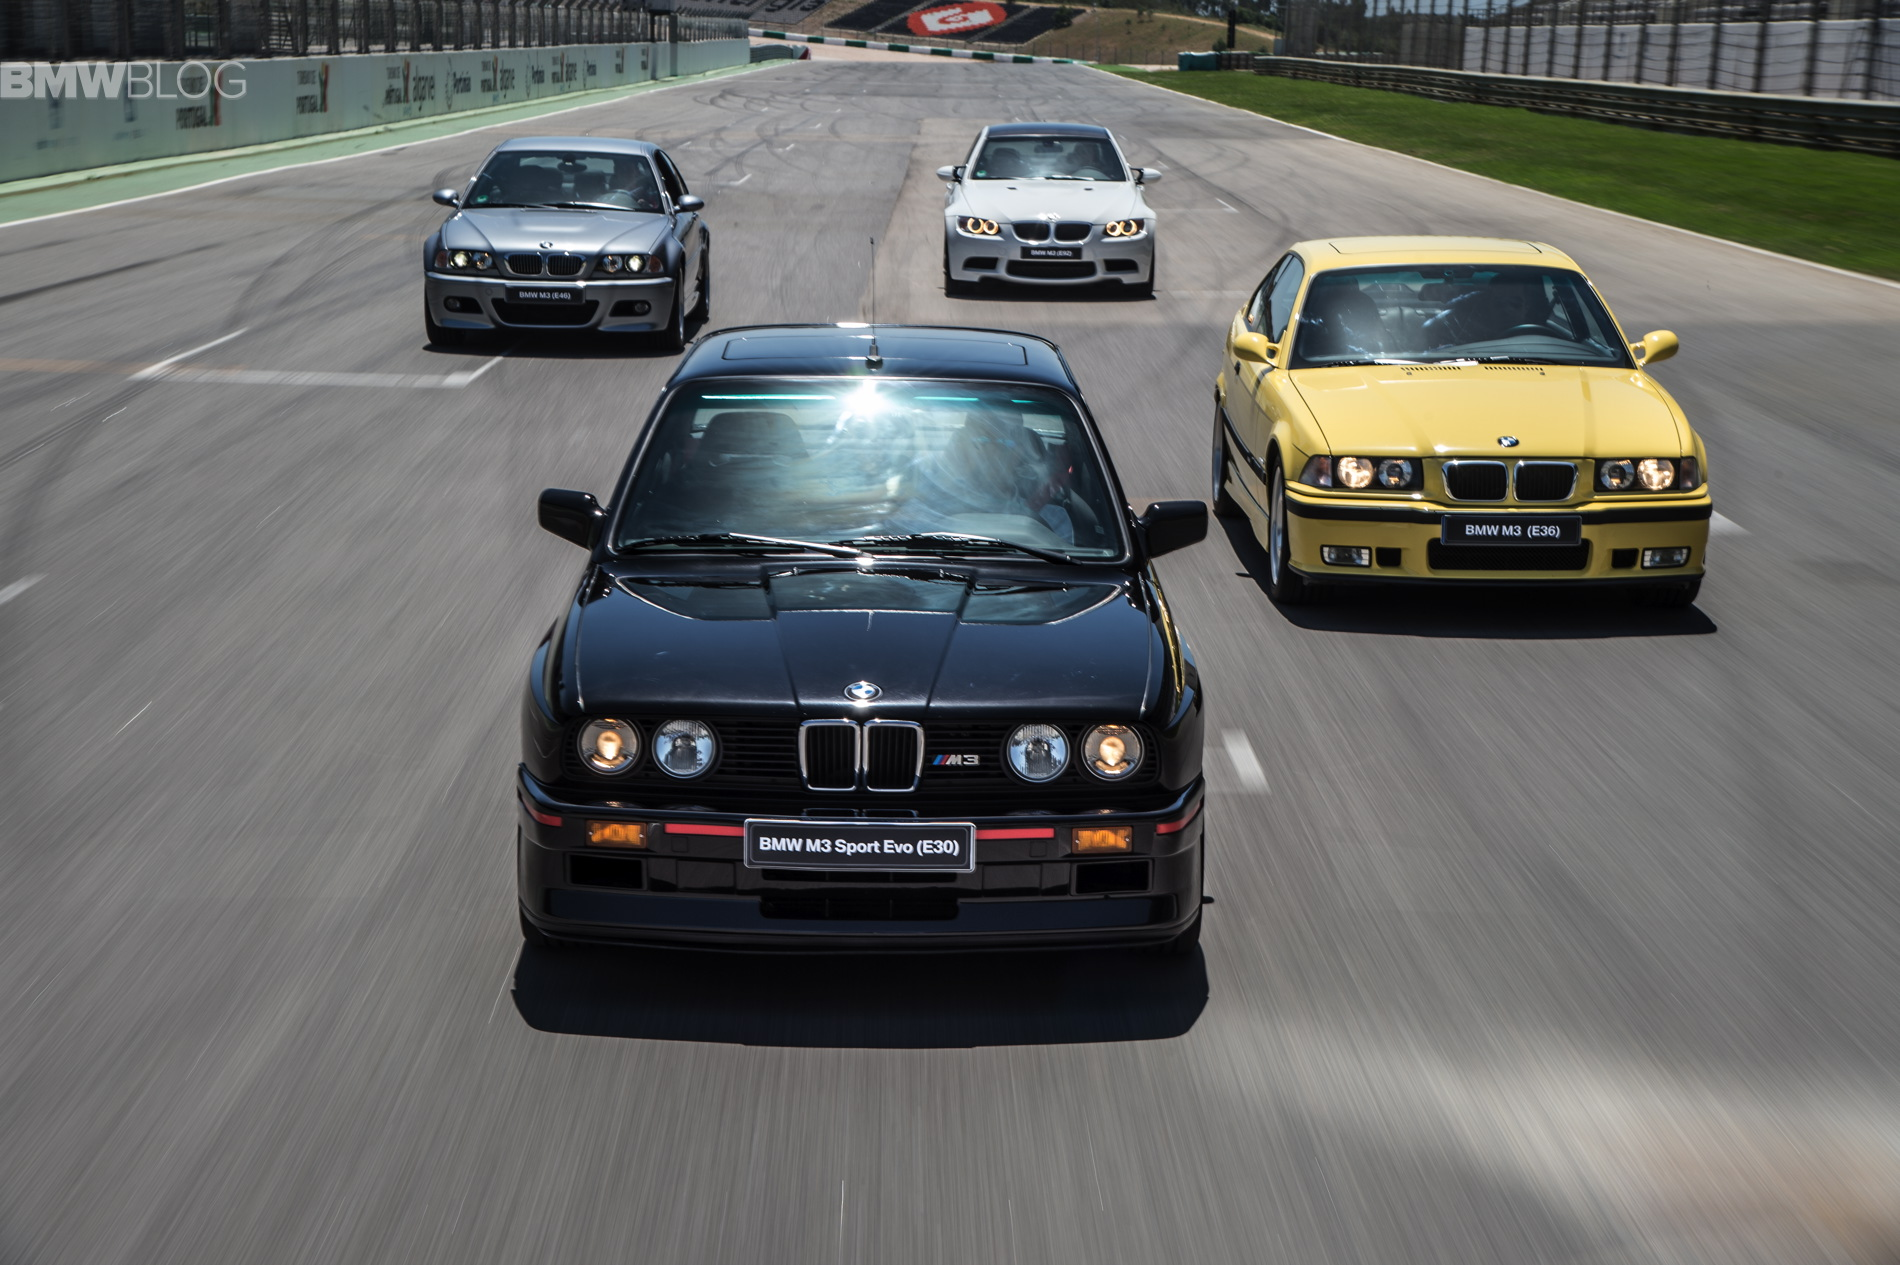 The Ultimate Bmw M3 Review E30 Vs E36 Vs E46 Vs E92 Vs F80